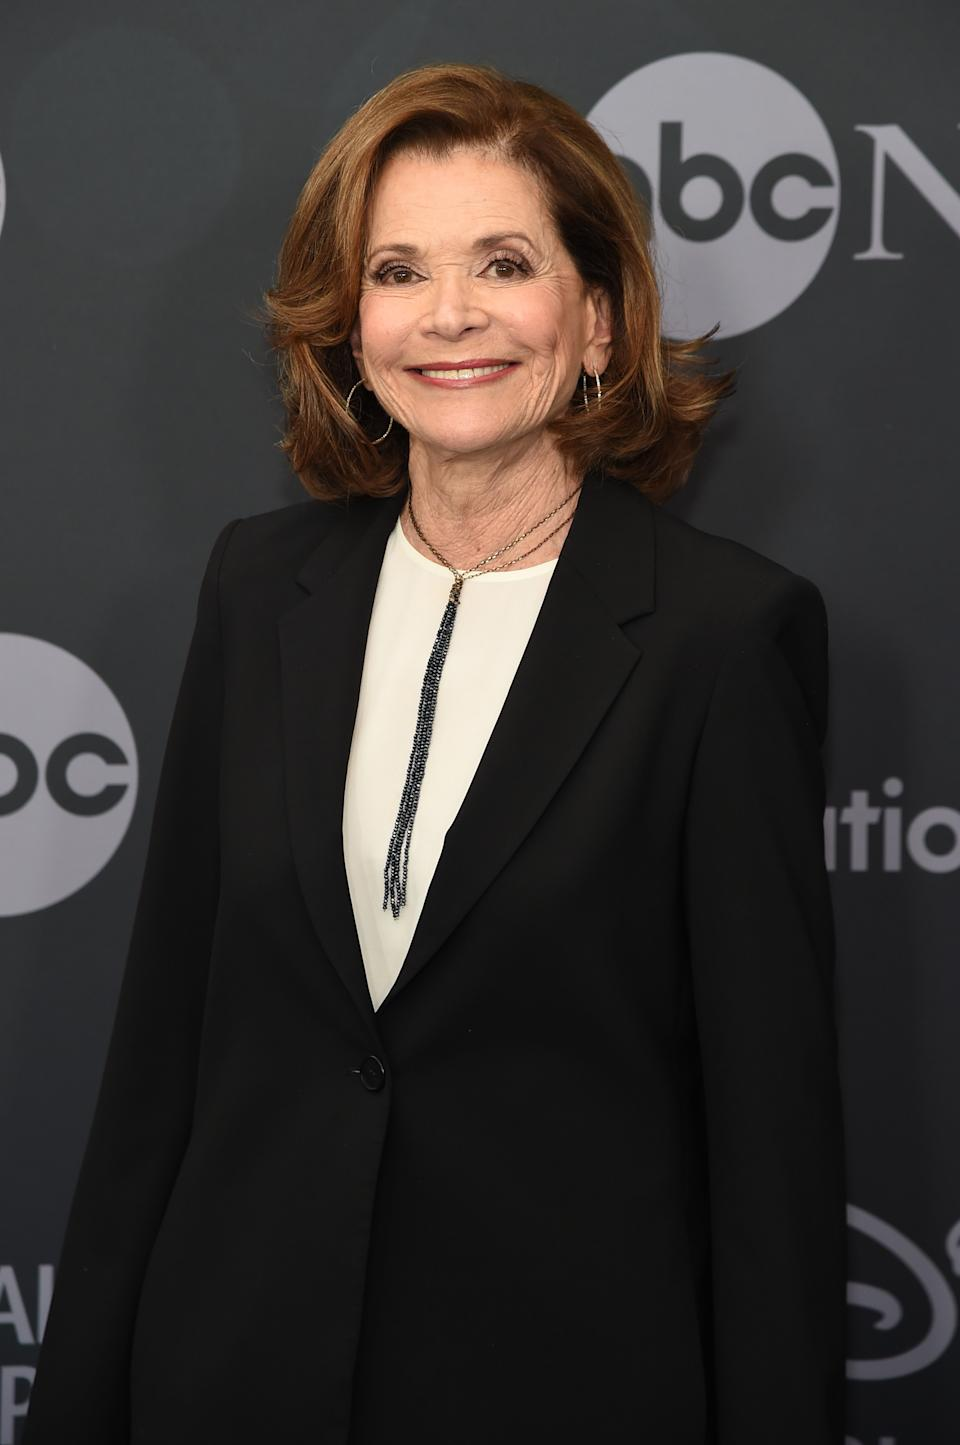 Jessica, who is famous for her role as Lucille Bluth in Arrested Development, also starred in a number of film roles. Photo: Getty